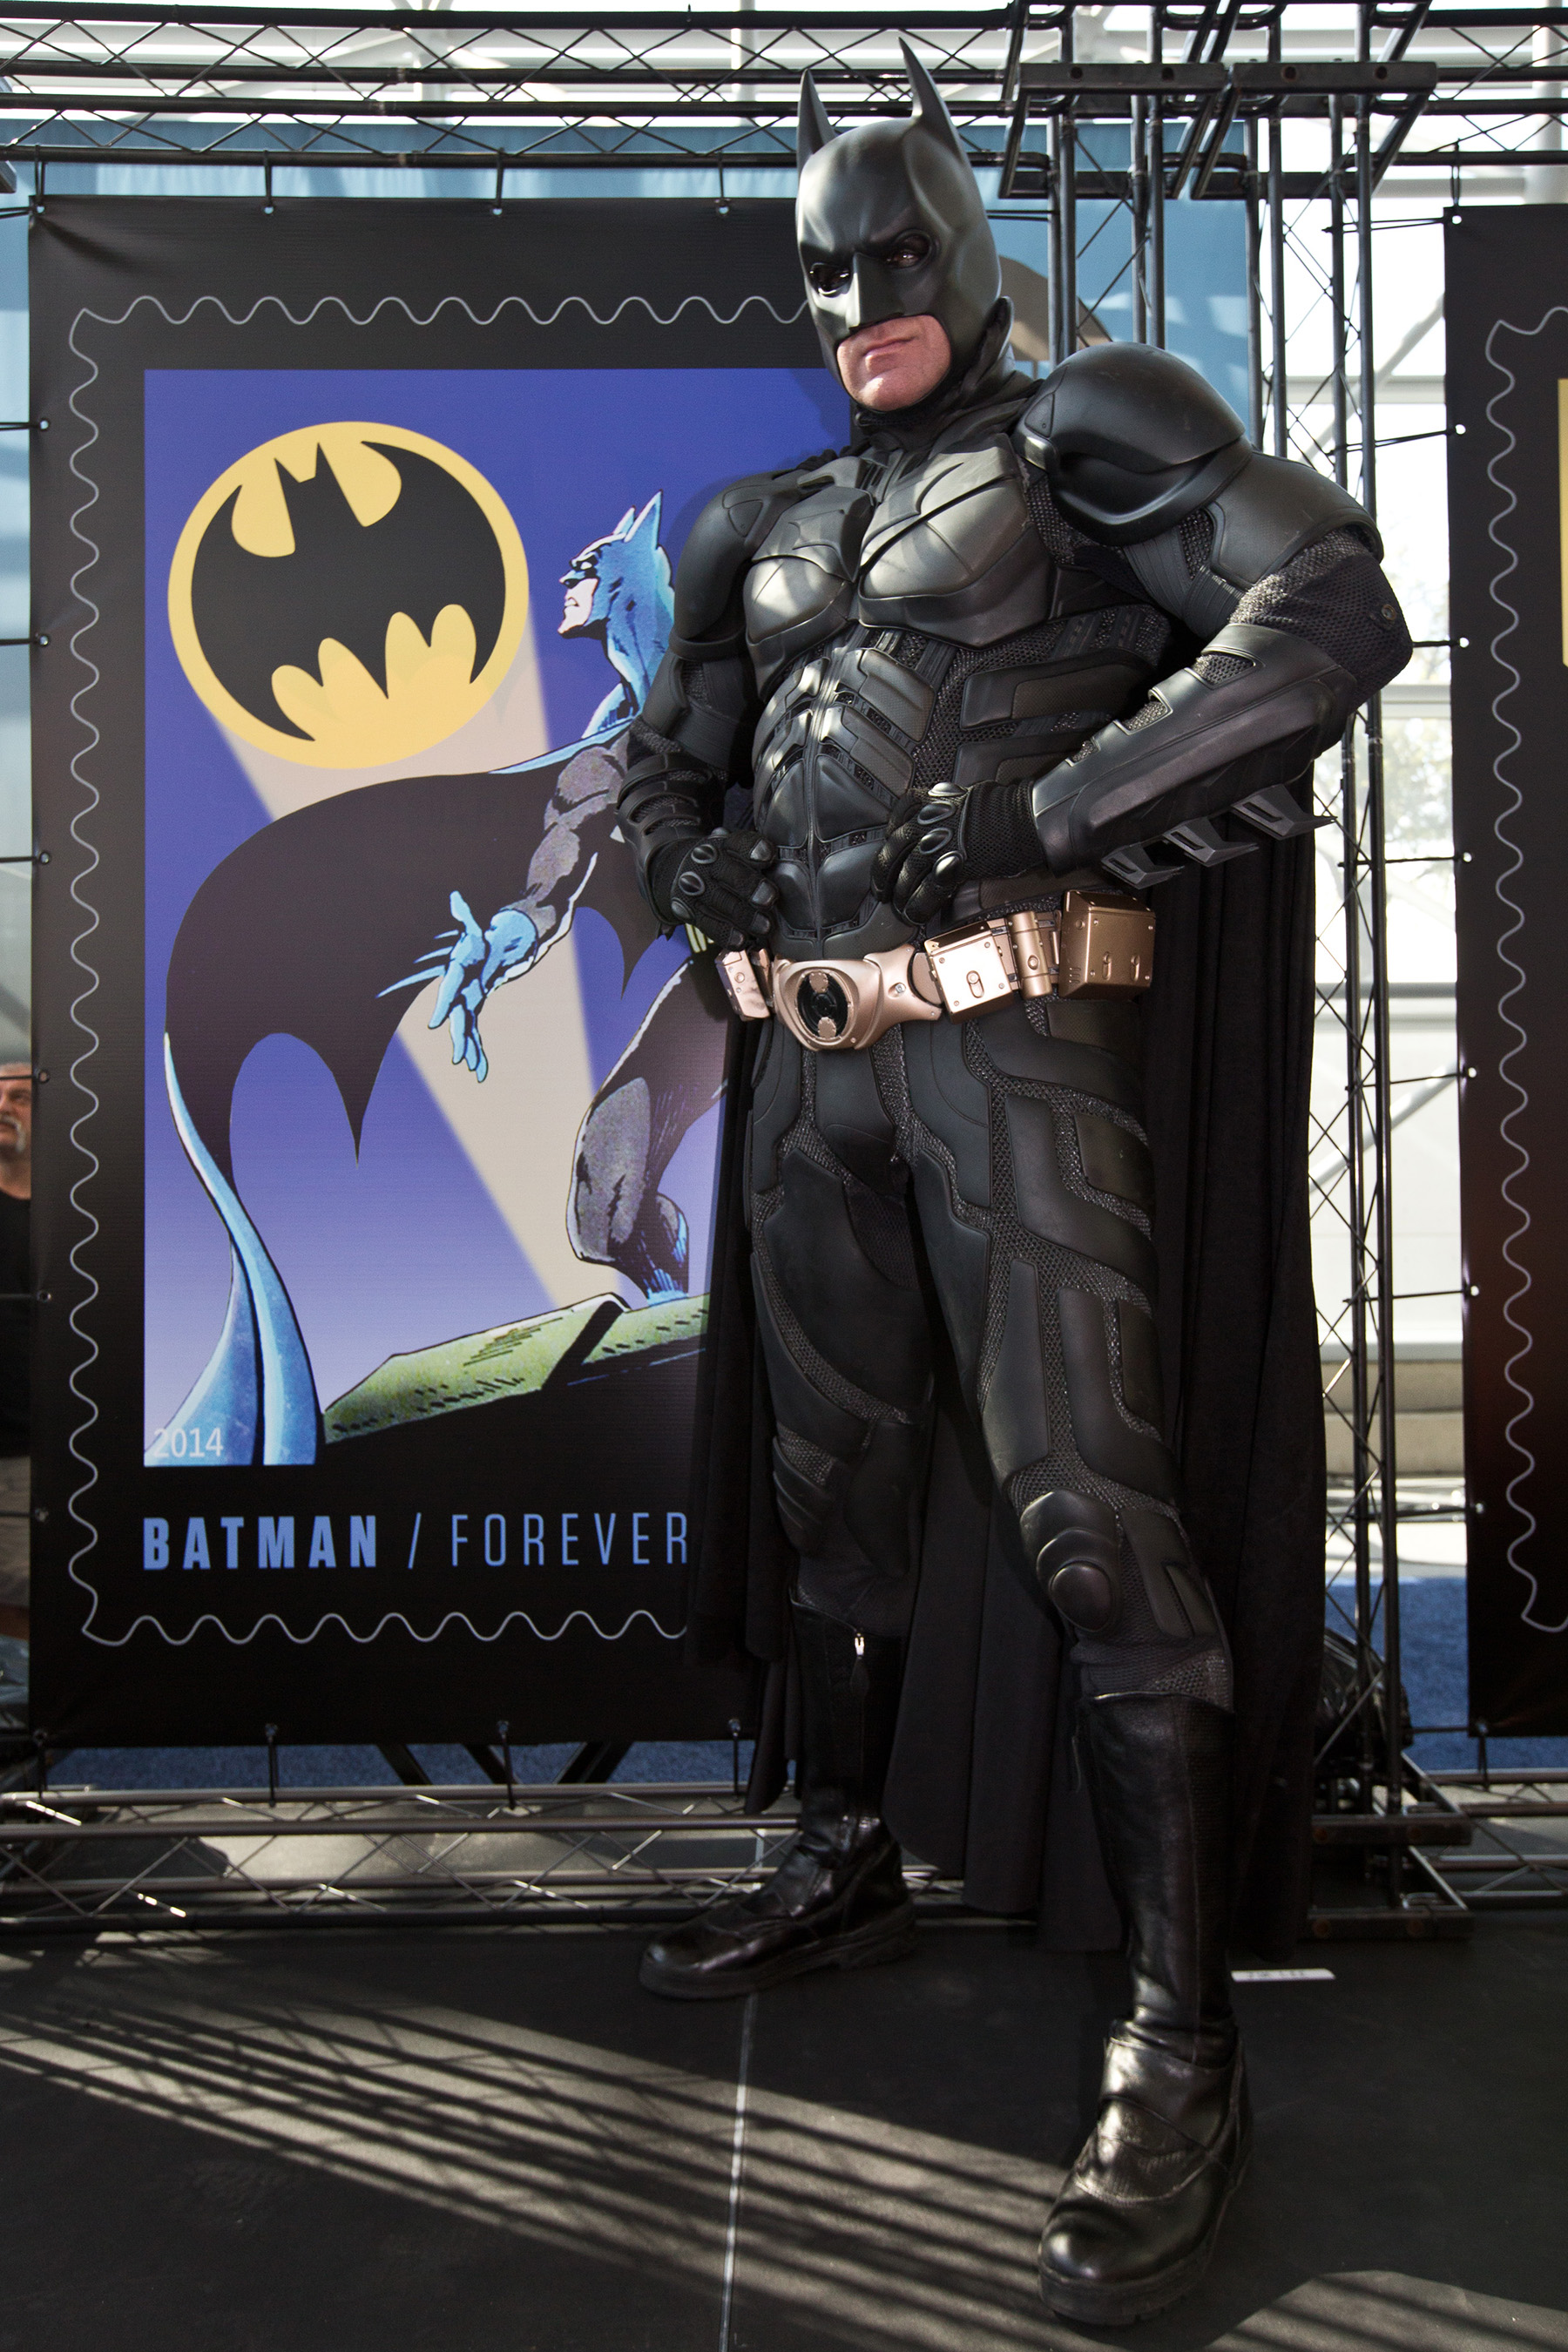 http://www.multivu.com/players/English/7343151-usps-forever-batman-stamp/gallery/image/d678db2e-b8c1-4f7c-a161-c1c9a458f9b0.HR.jpg